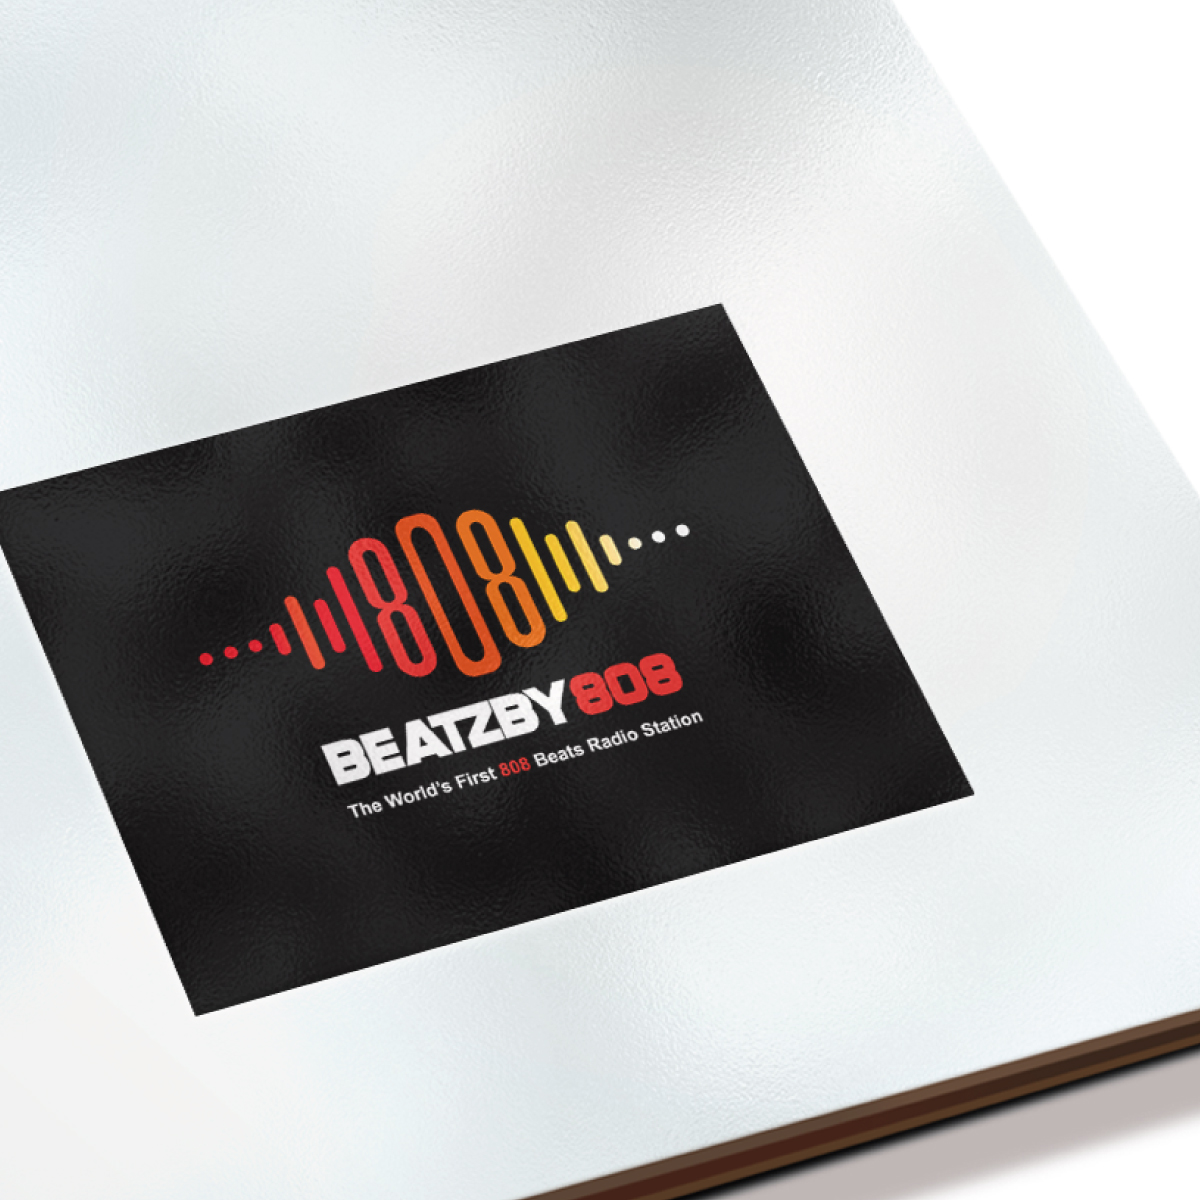 Logo design for Beatzby808 online radio station